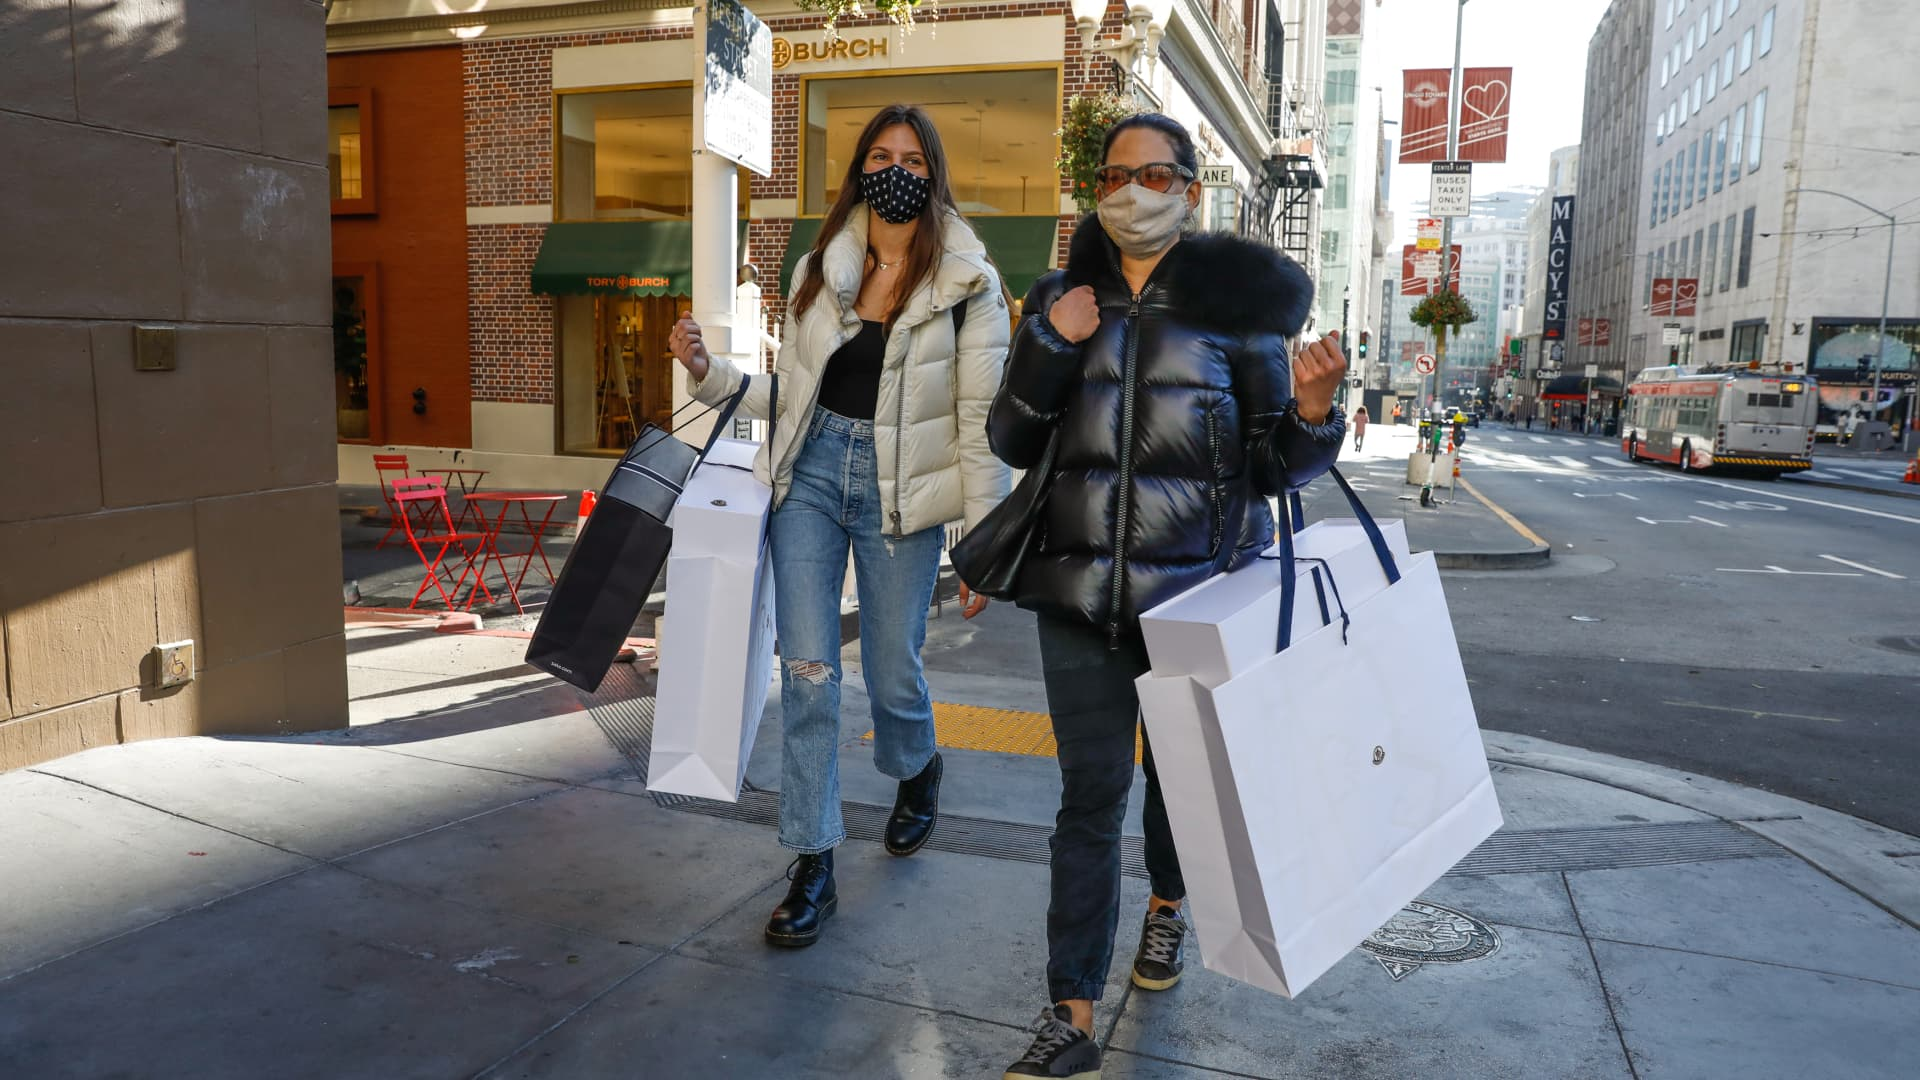 Wendy Reicher (right) and daughter Scarlett Reicher,18, (left) walk back to their car after going shopping in Union Square on Tuesday, Dec. 1, 2020 in San Francisco, California.